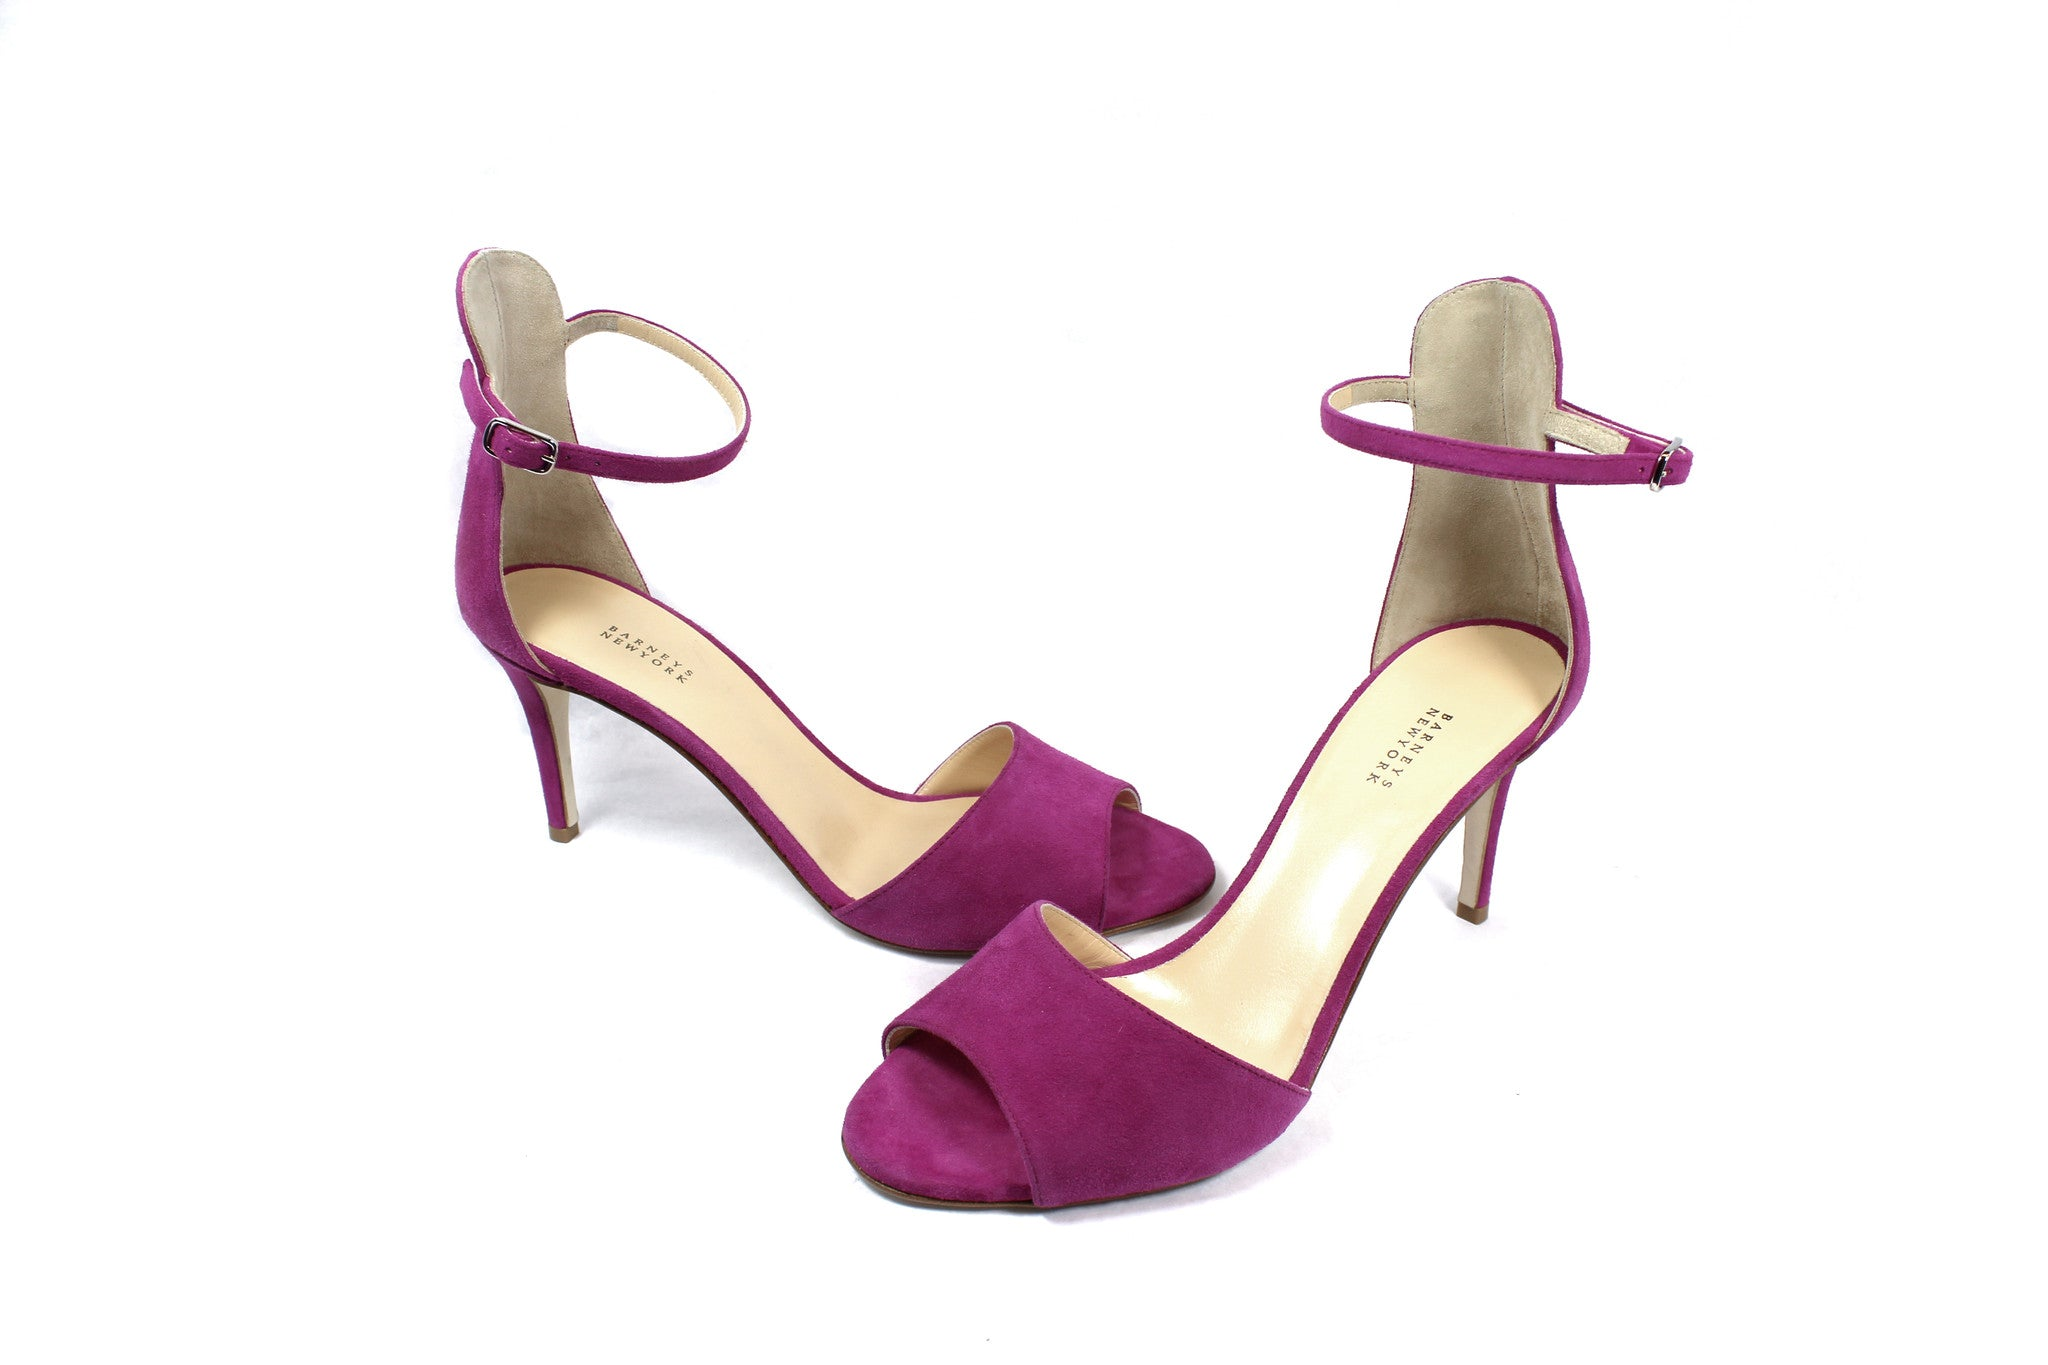 Barneys New York Fuchsia Suede Ankle Strap Sandals (Size 38.5) - Encore Consignment - 1